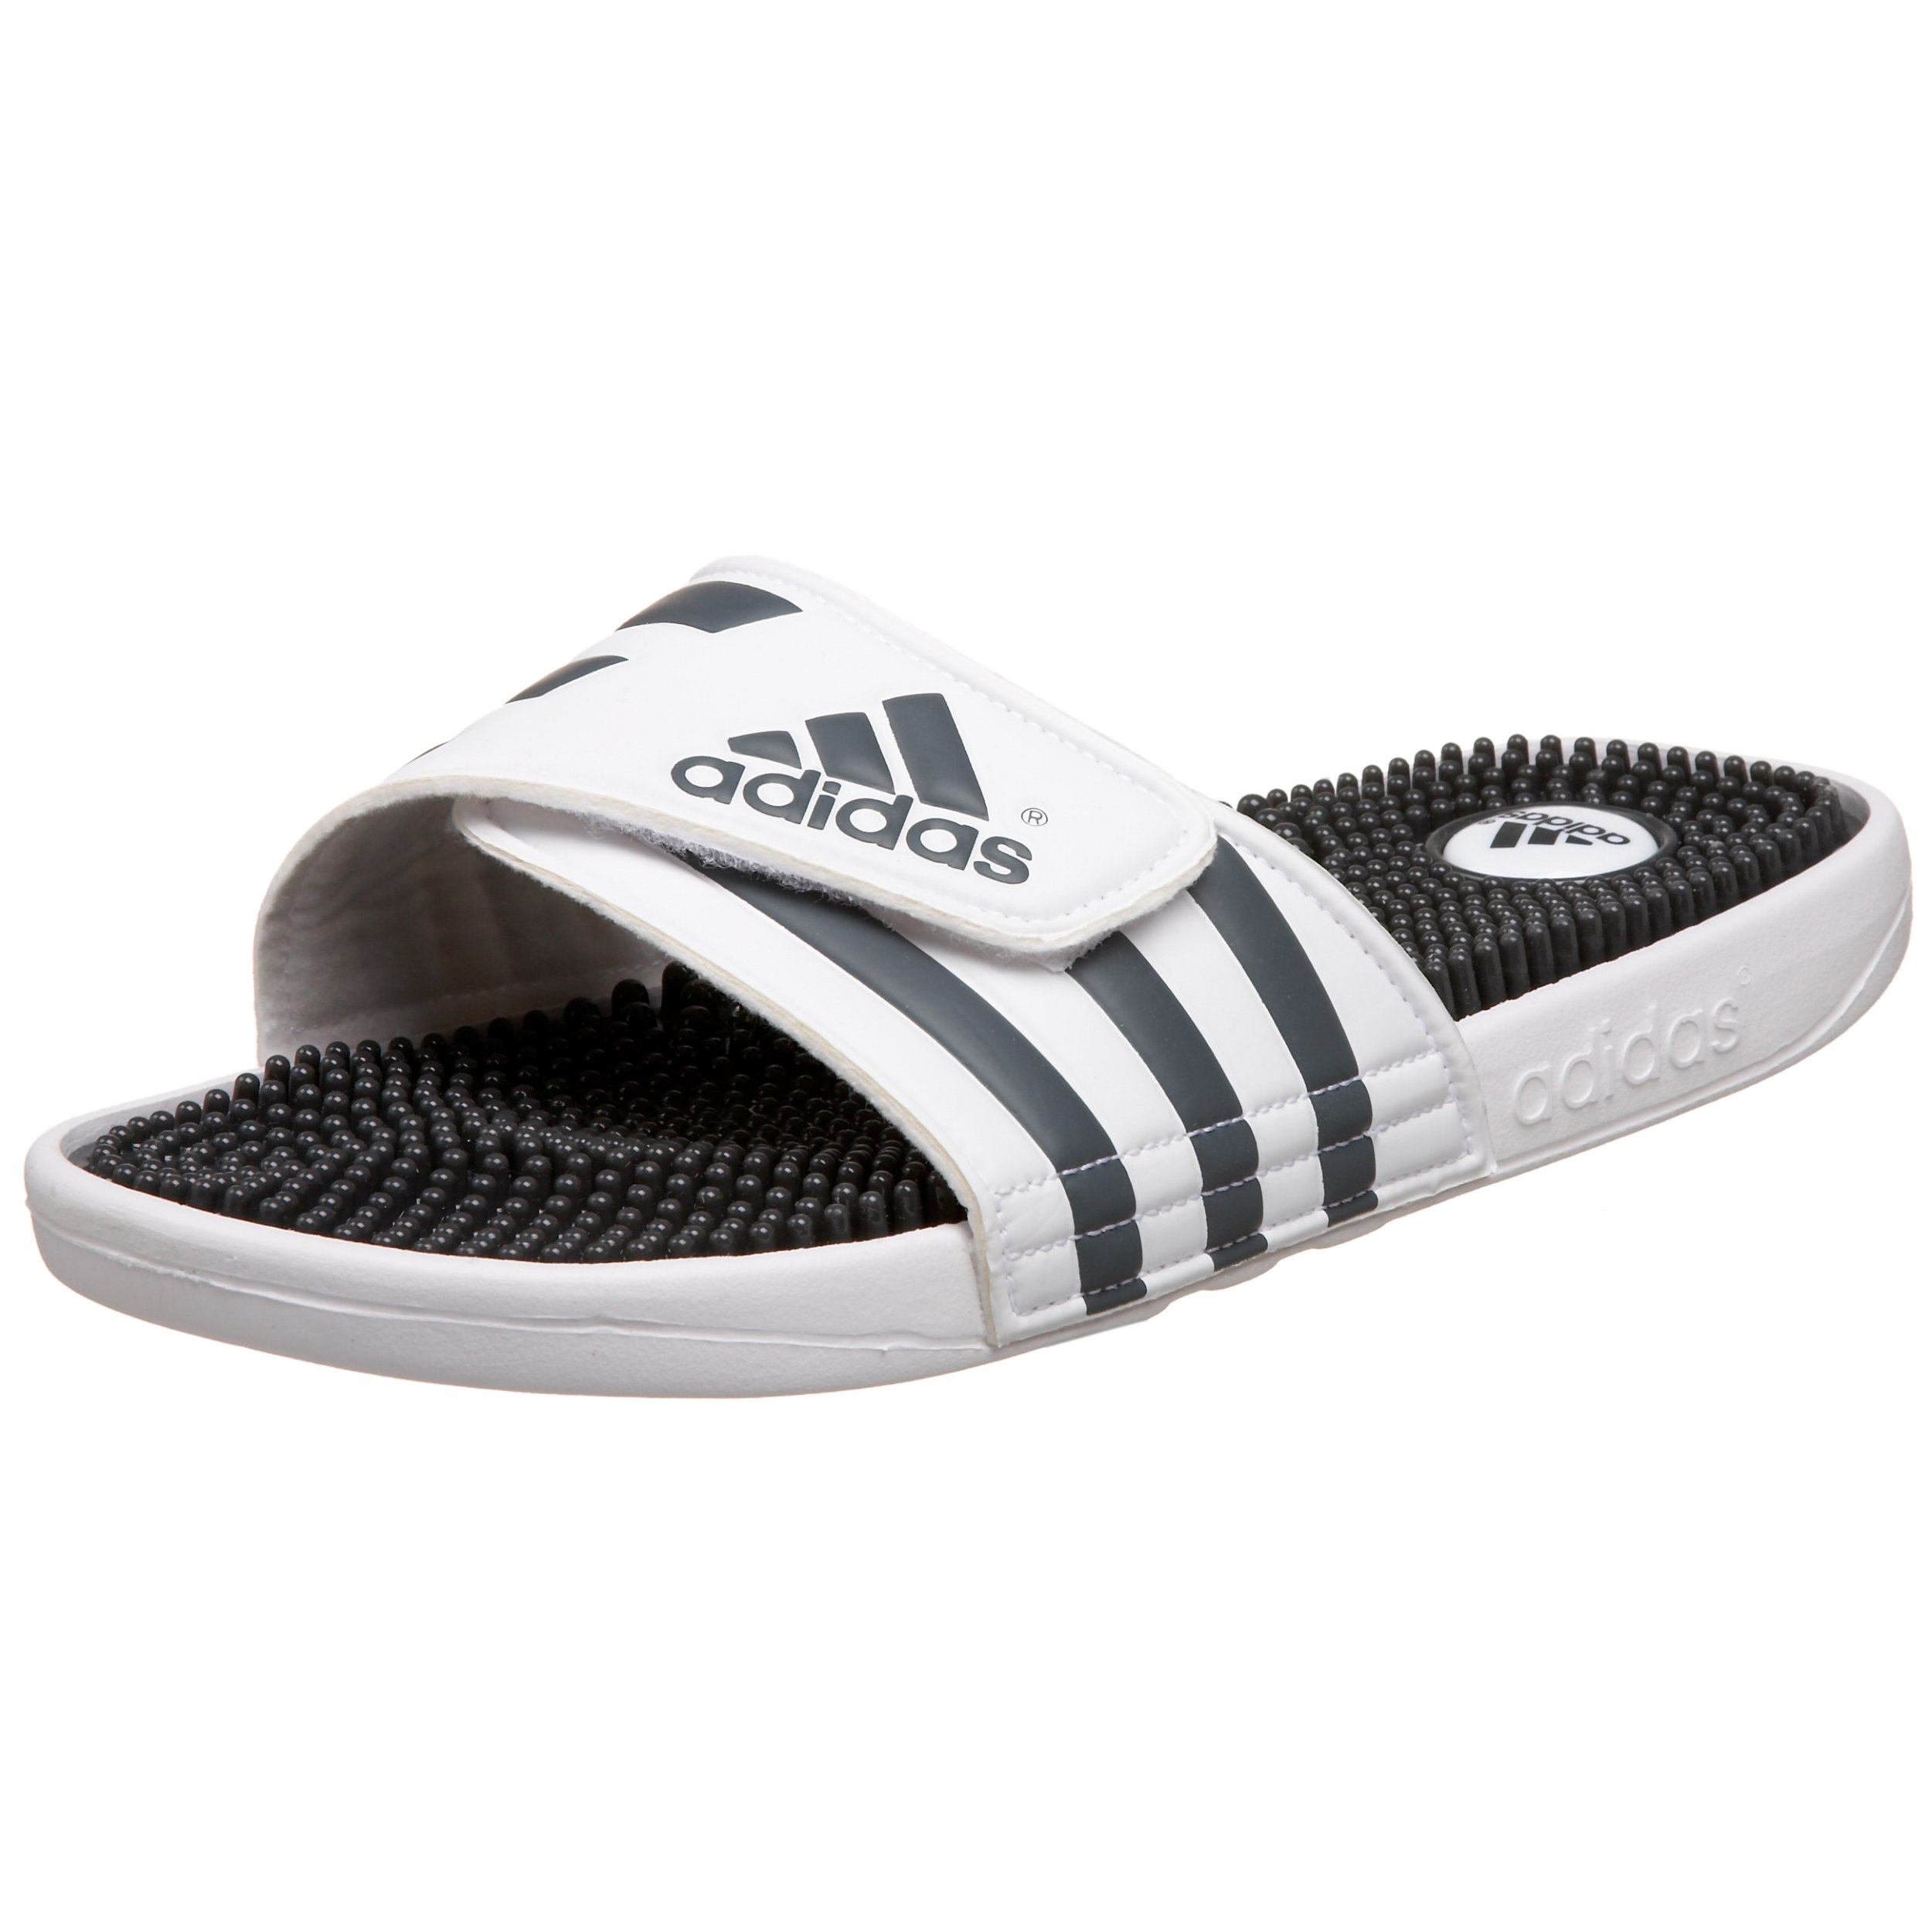 adidas Originals Men's Adissage Sandal,Run White/Graphite/Run White,14 M